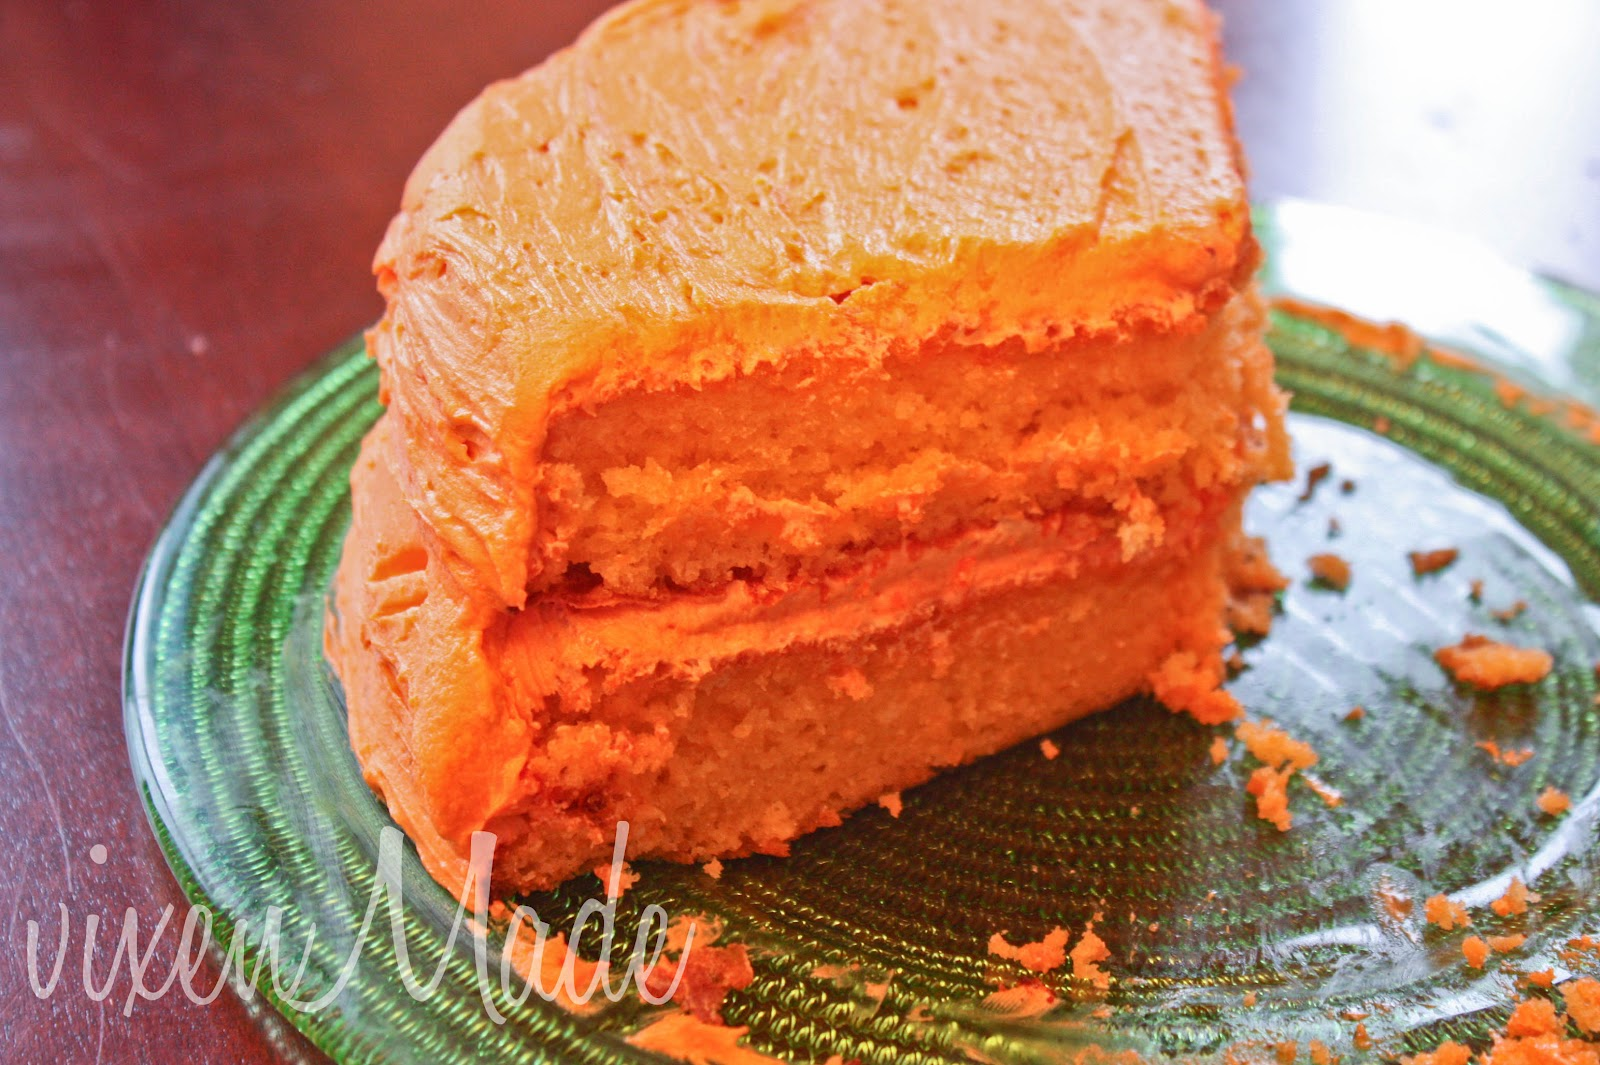 Where Can I Find Orange Cake Mix